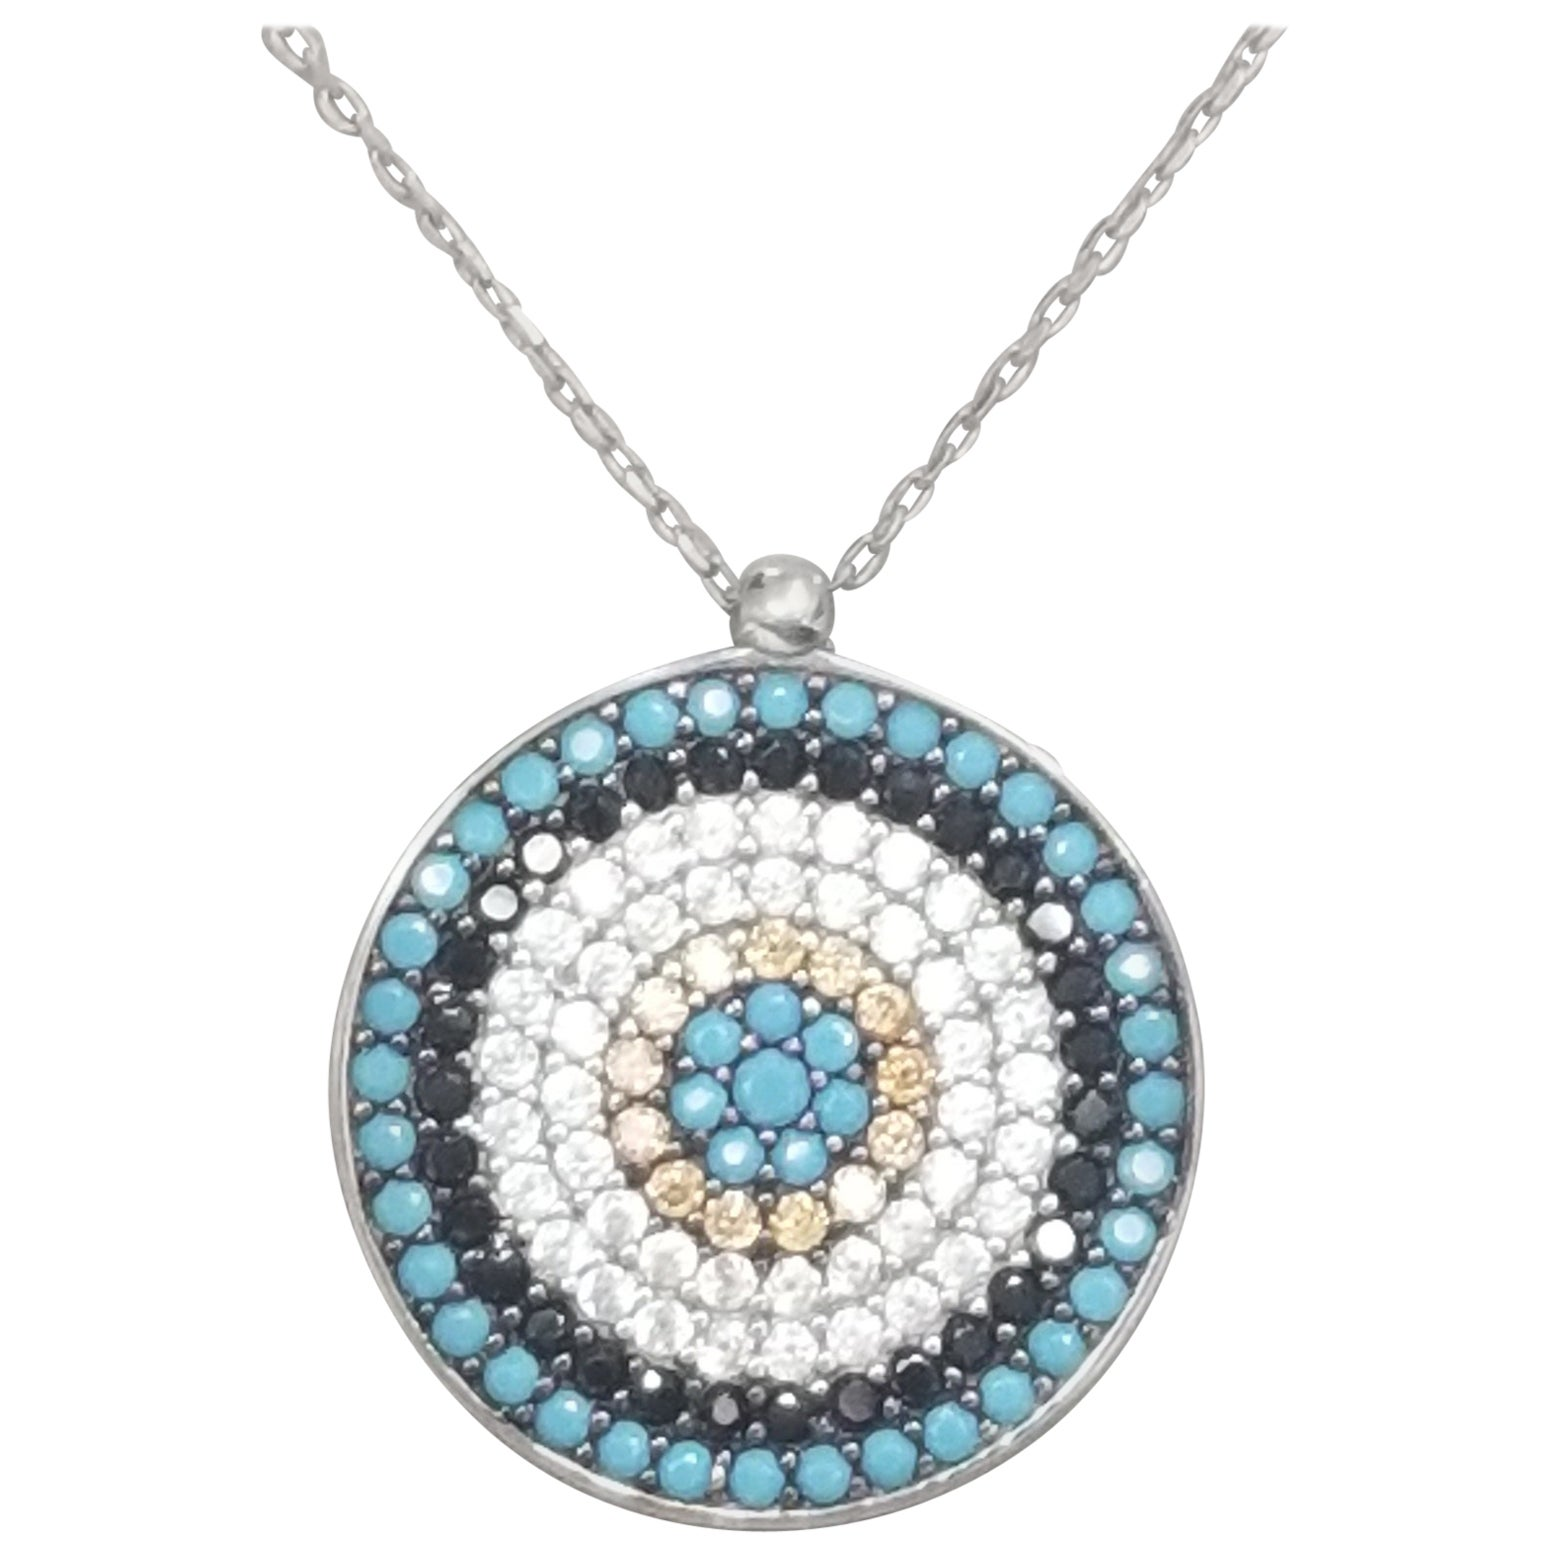 Sterling Silver Pendant with Turquoise and Cubic